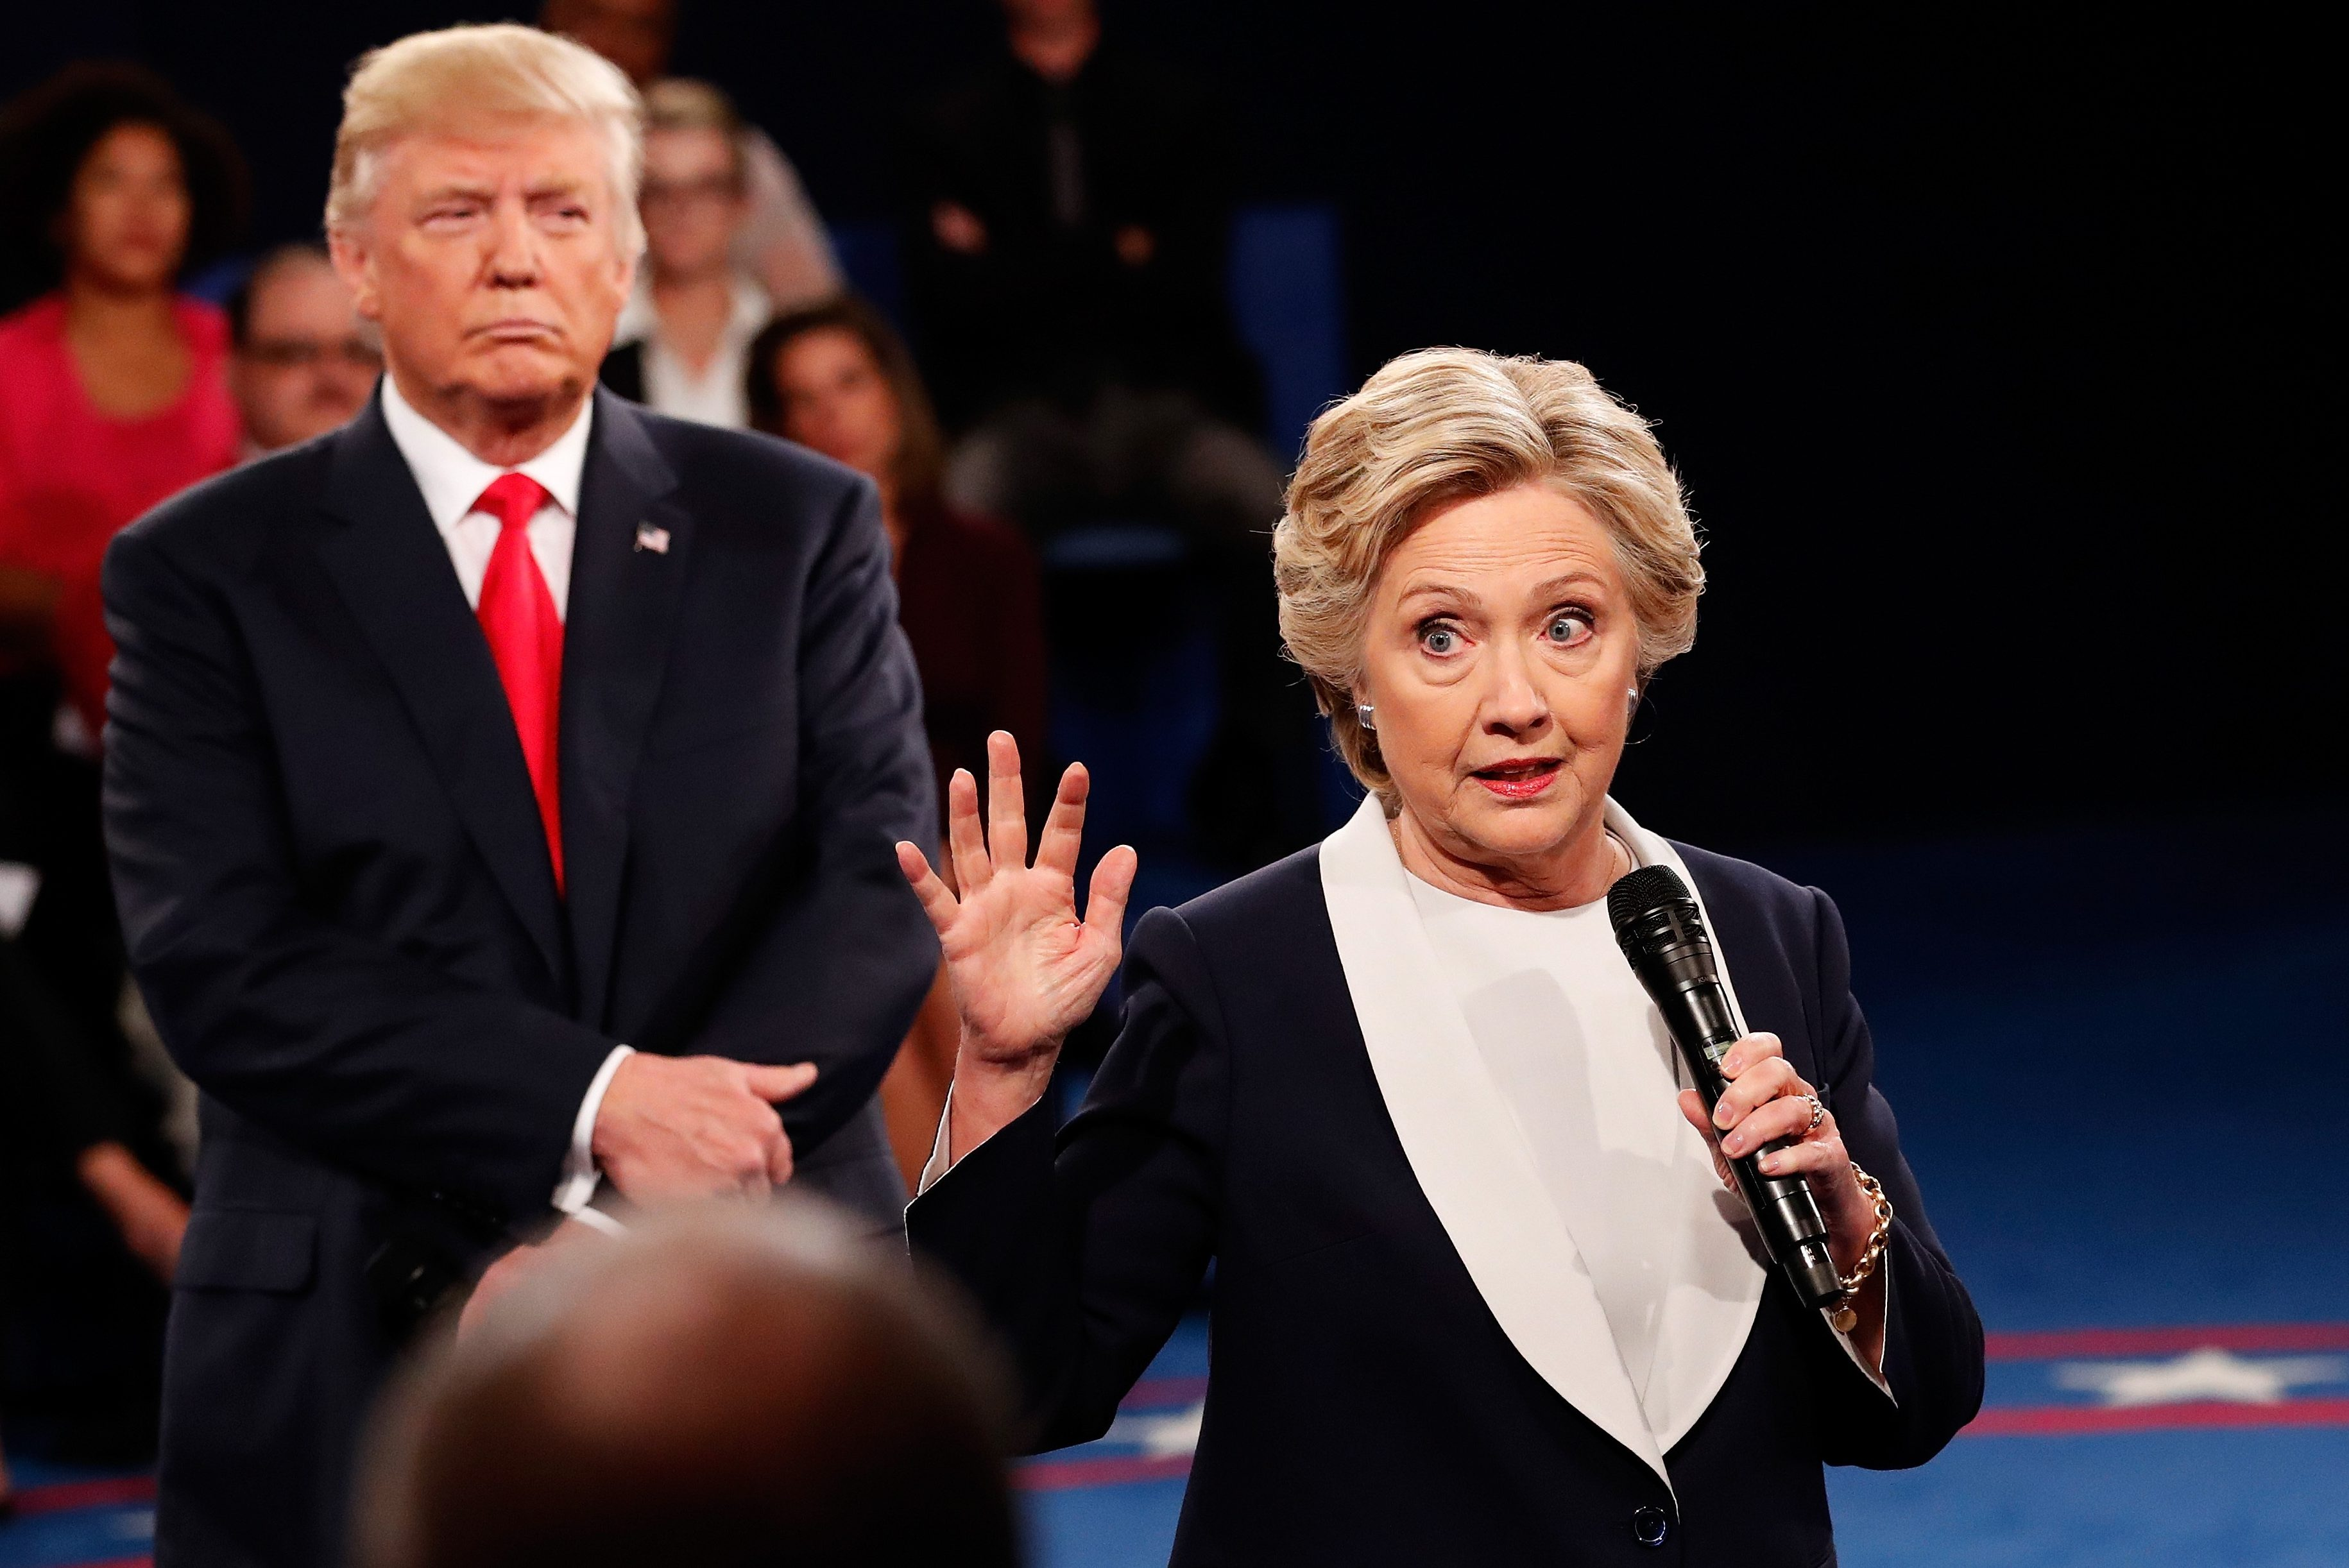 during the town hall debate at Washington University on October 9, 2016 in St Louis, Missouri. This is the second of three presidential debates scheduled prior to the November 8th election.